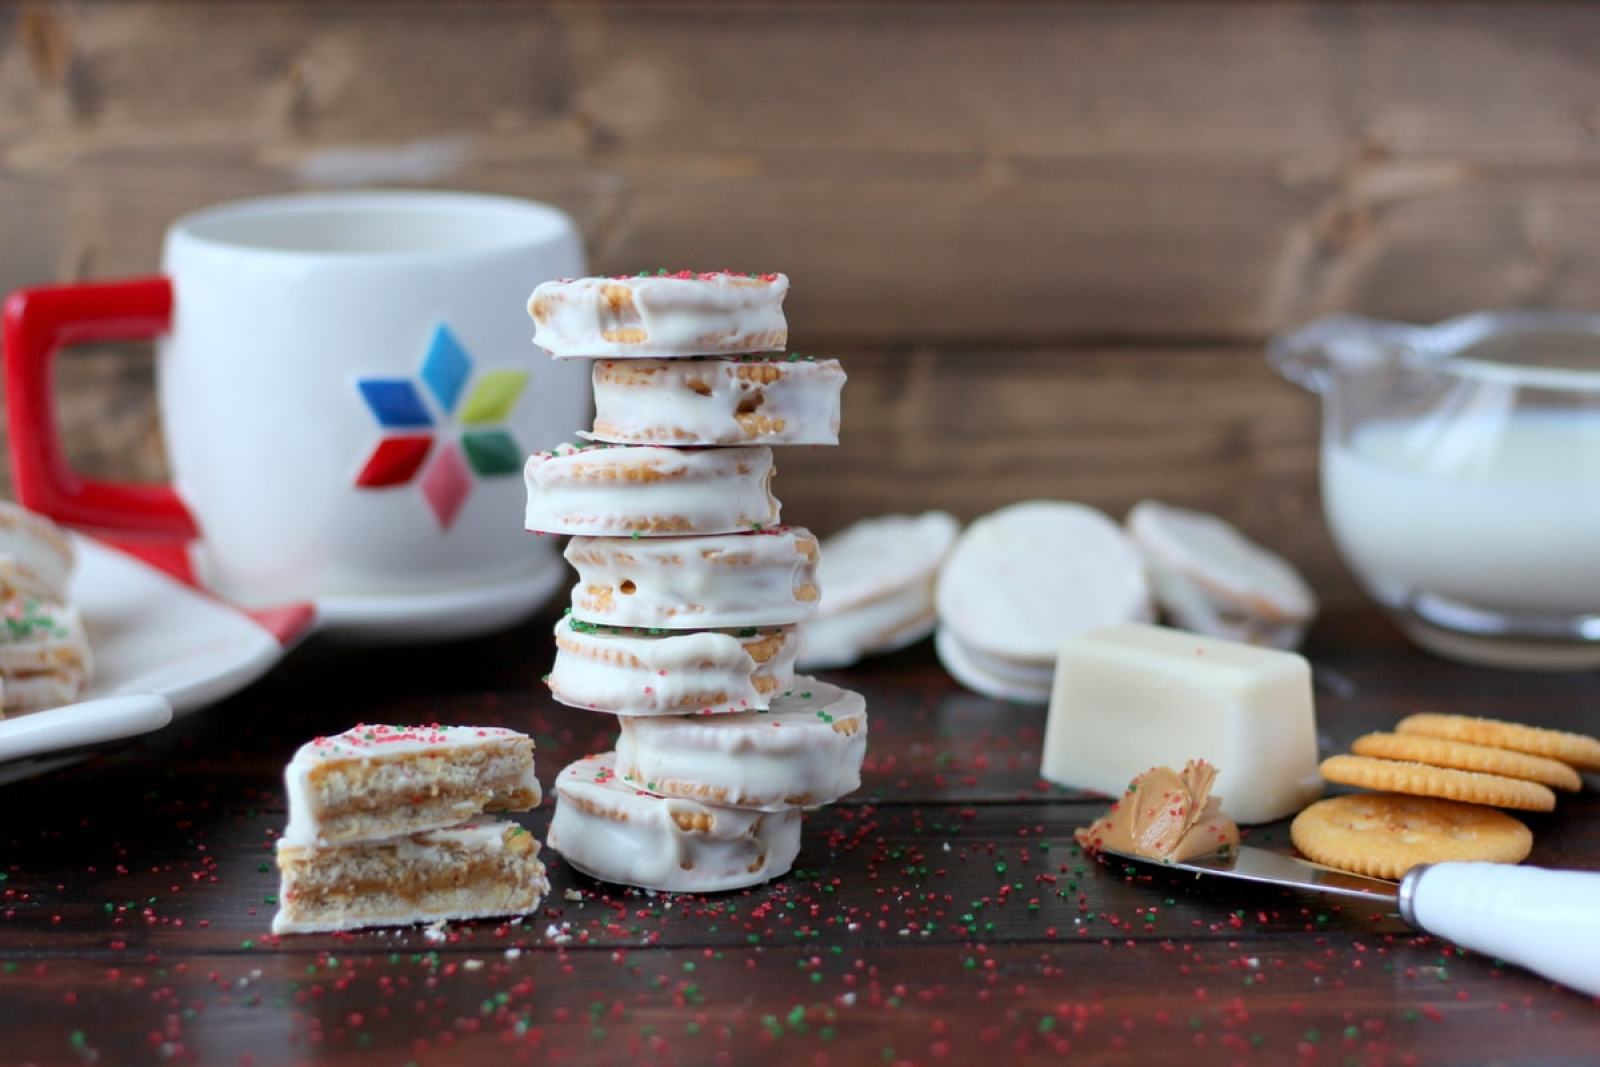 Classic White Chocolate + Peanut Butter Dipped Christmas Cookies - no bake and simple, these cookies will become your new family favorite this holiday season! thewoodenskillet.com